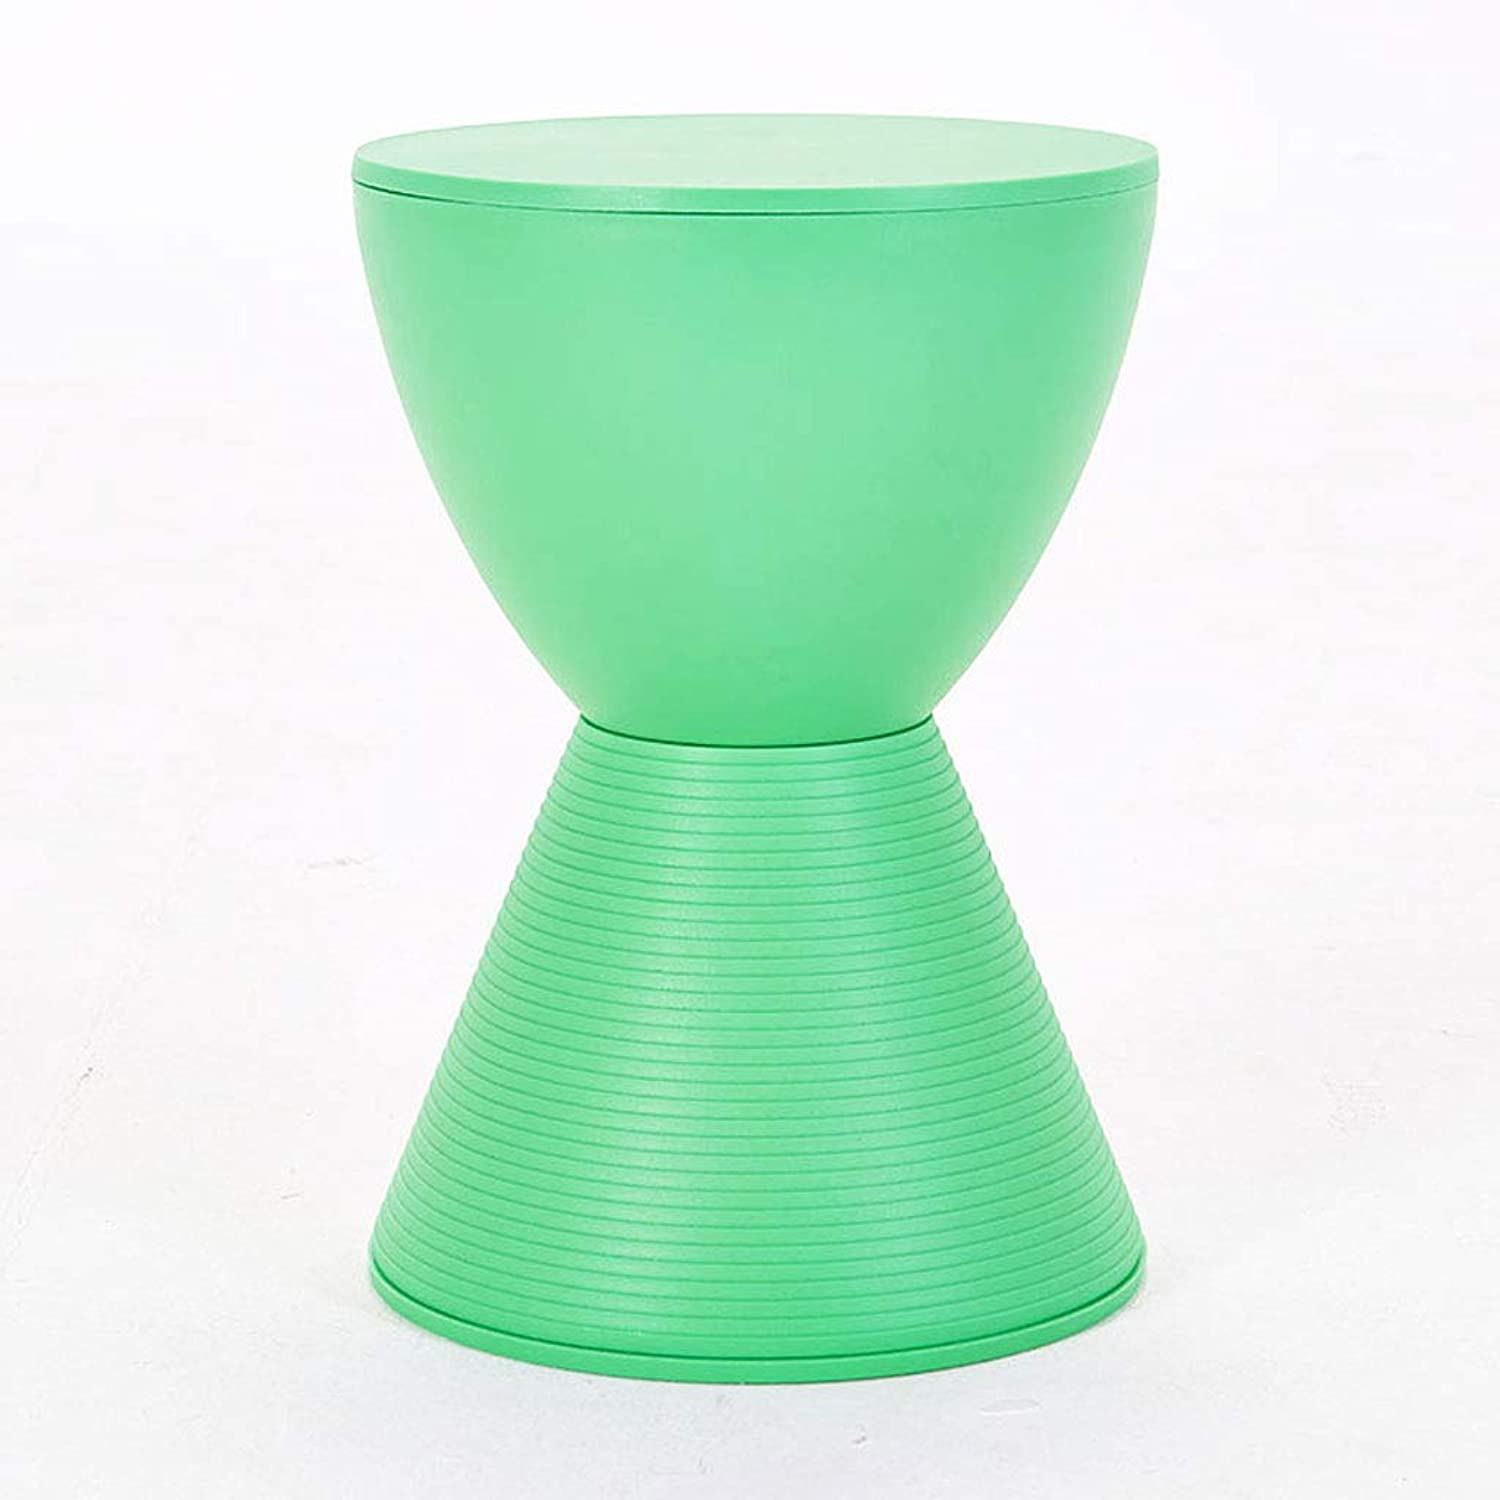 HY Stool Nordic Plastic Living Room Sofa Change shoes Stool Hourglass Shape (color   Green, Size   L30CMXW30CMXH42CM)